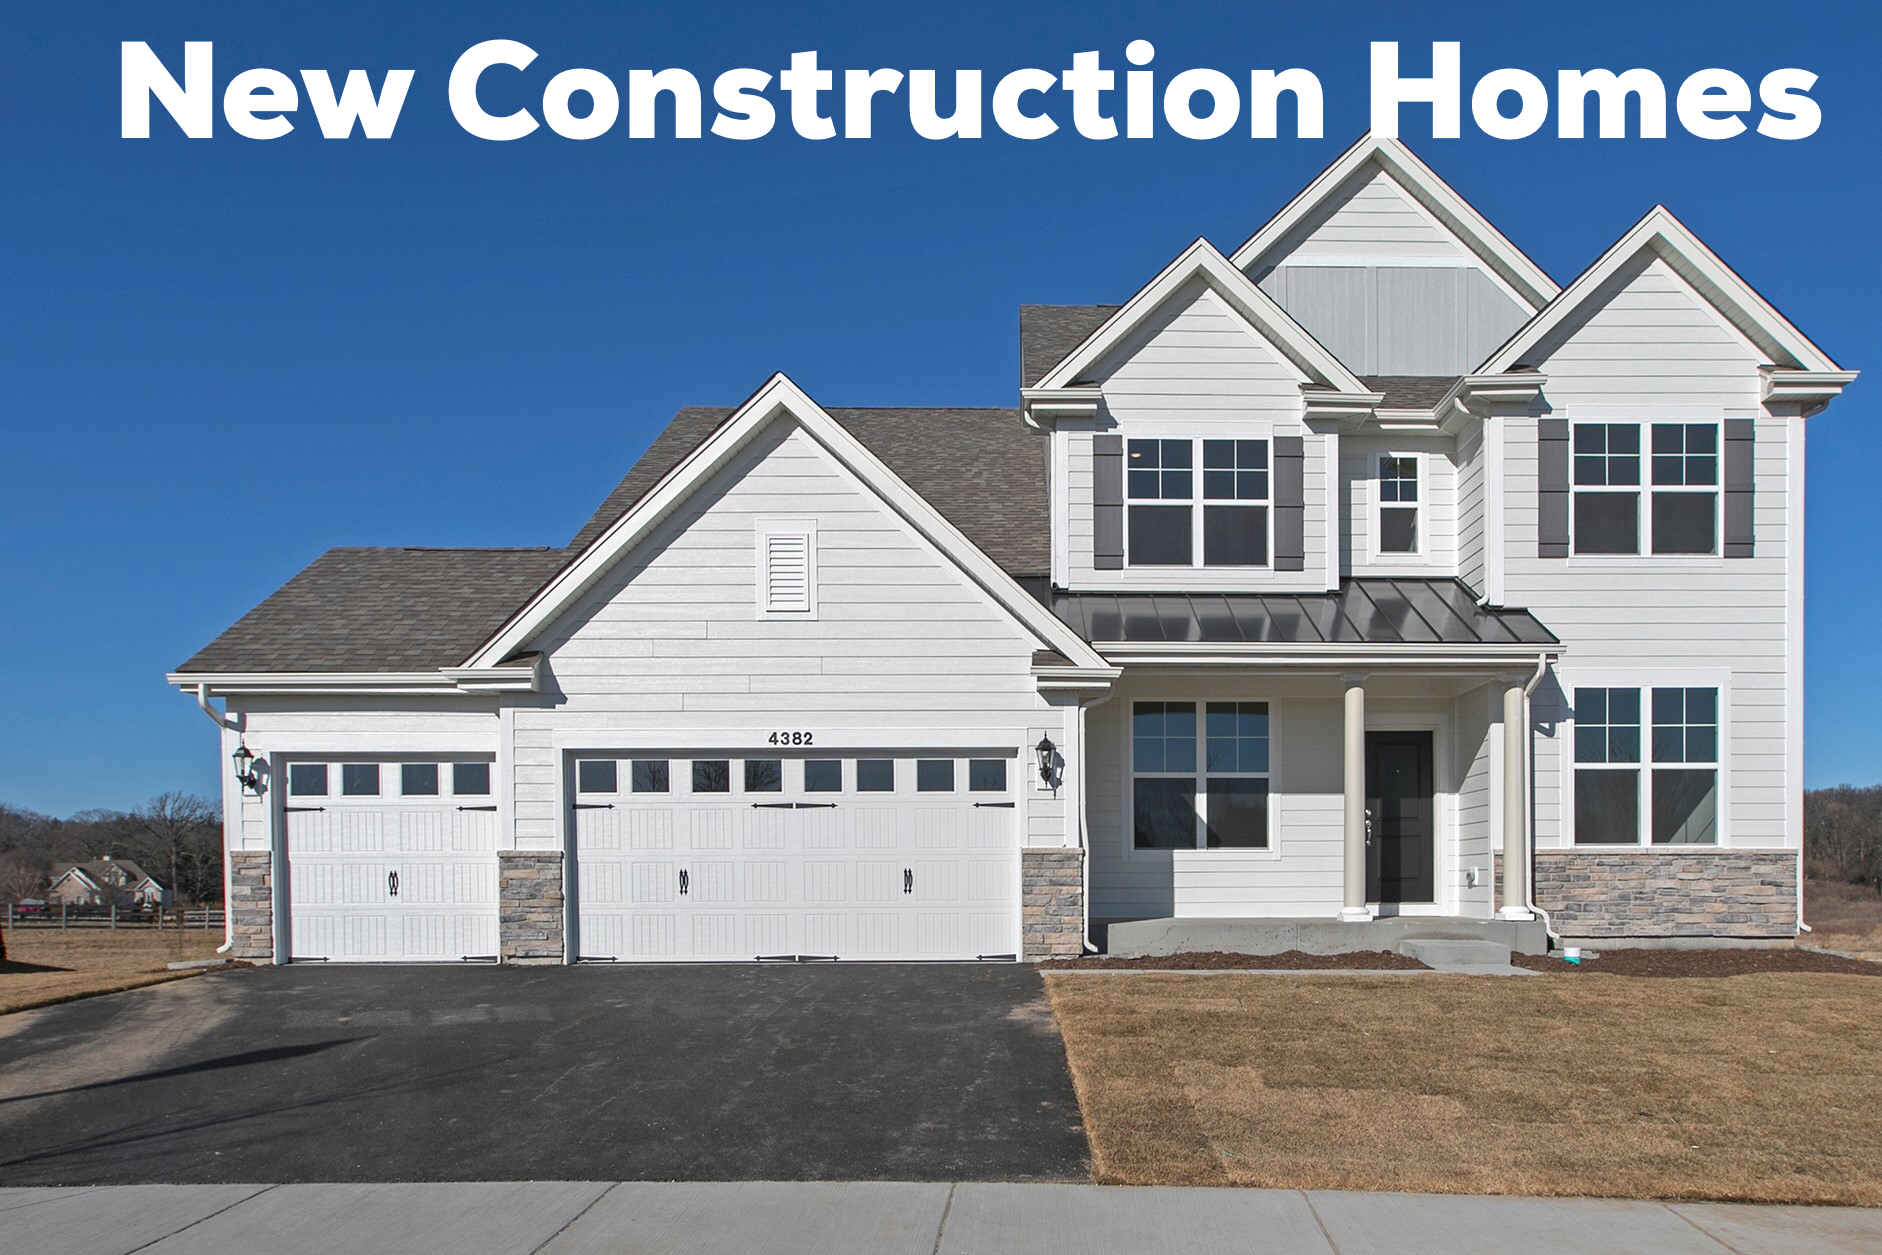 Find NEW Construction Homes